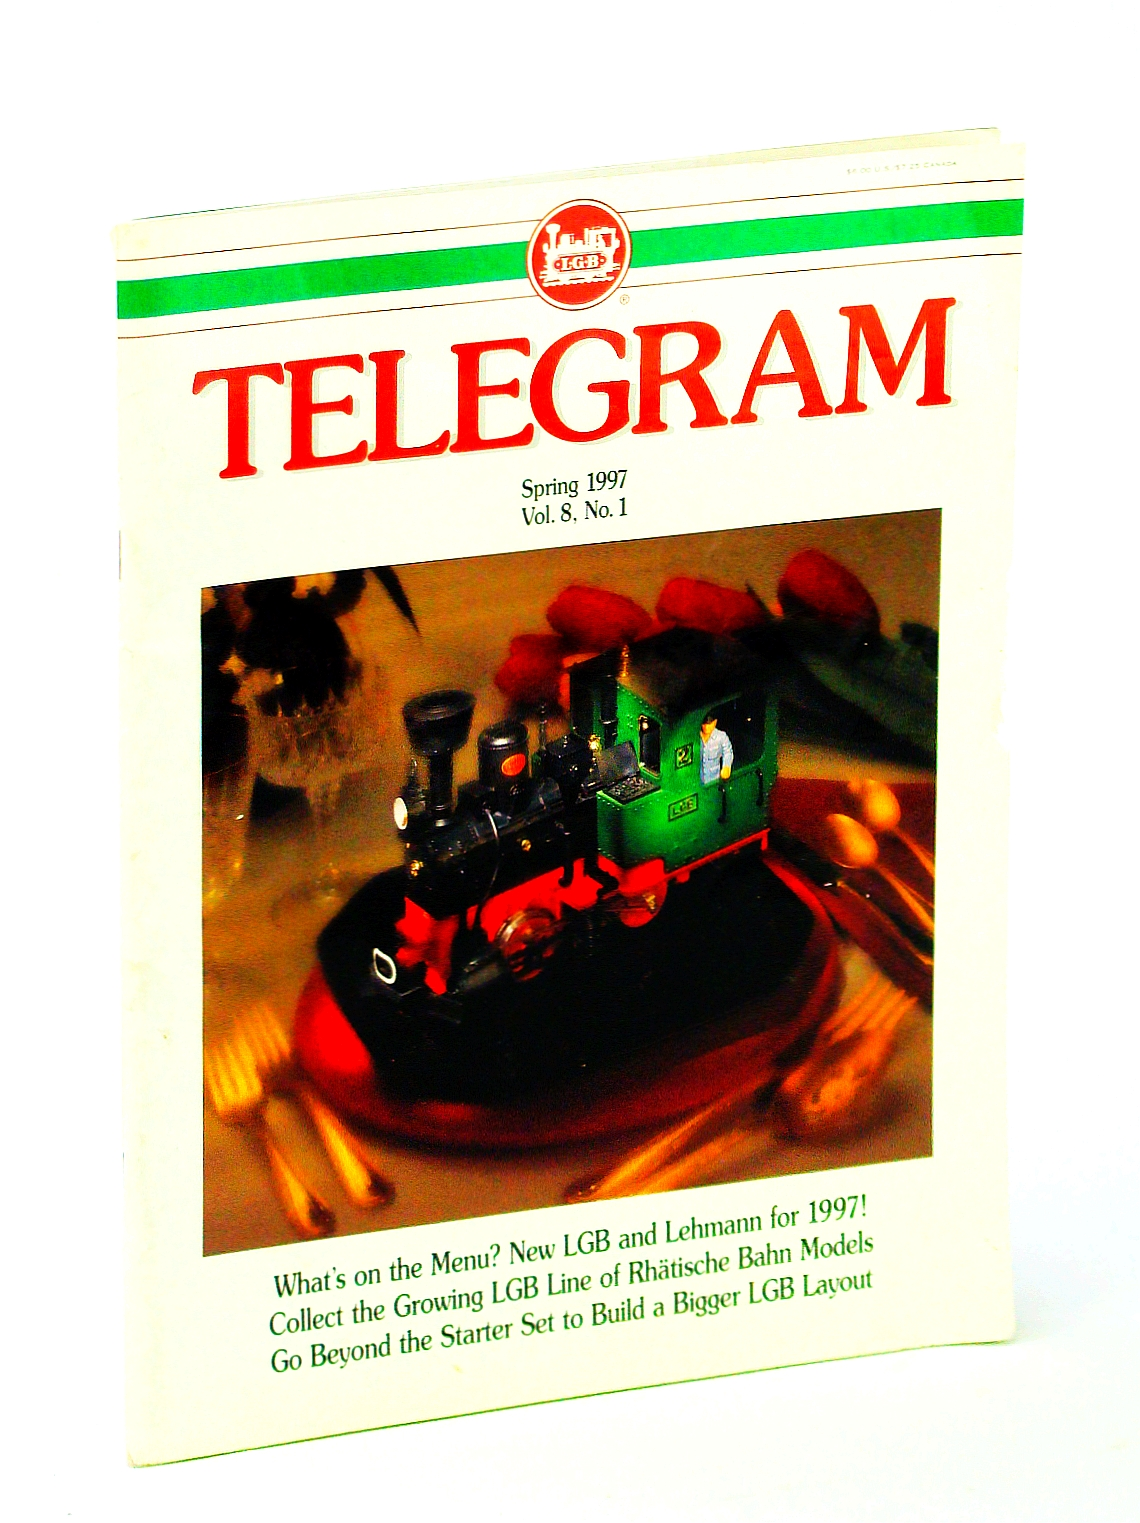 Image for [LGB] Telegram [Magazine], Spring 1997, Vol. 8, No. 1 - Meet Richard Stein